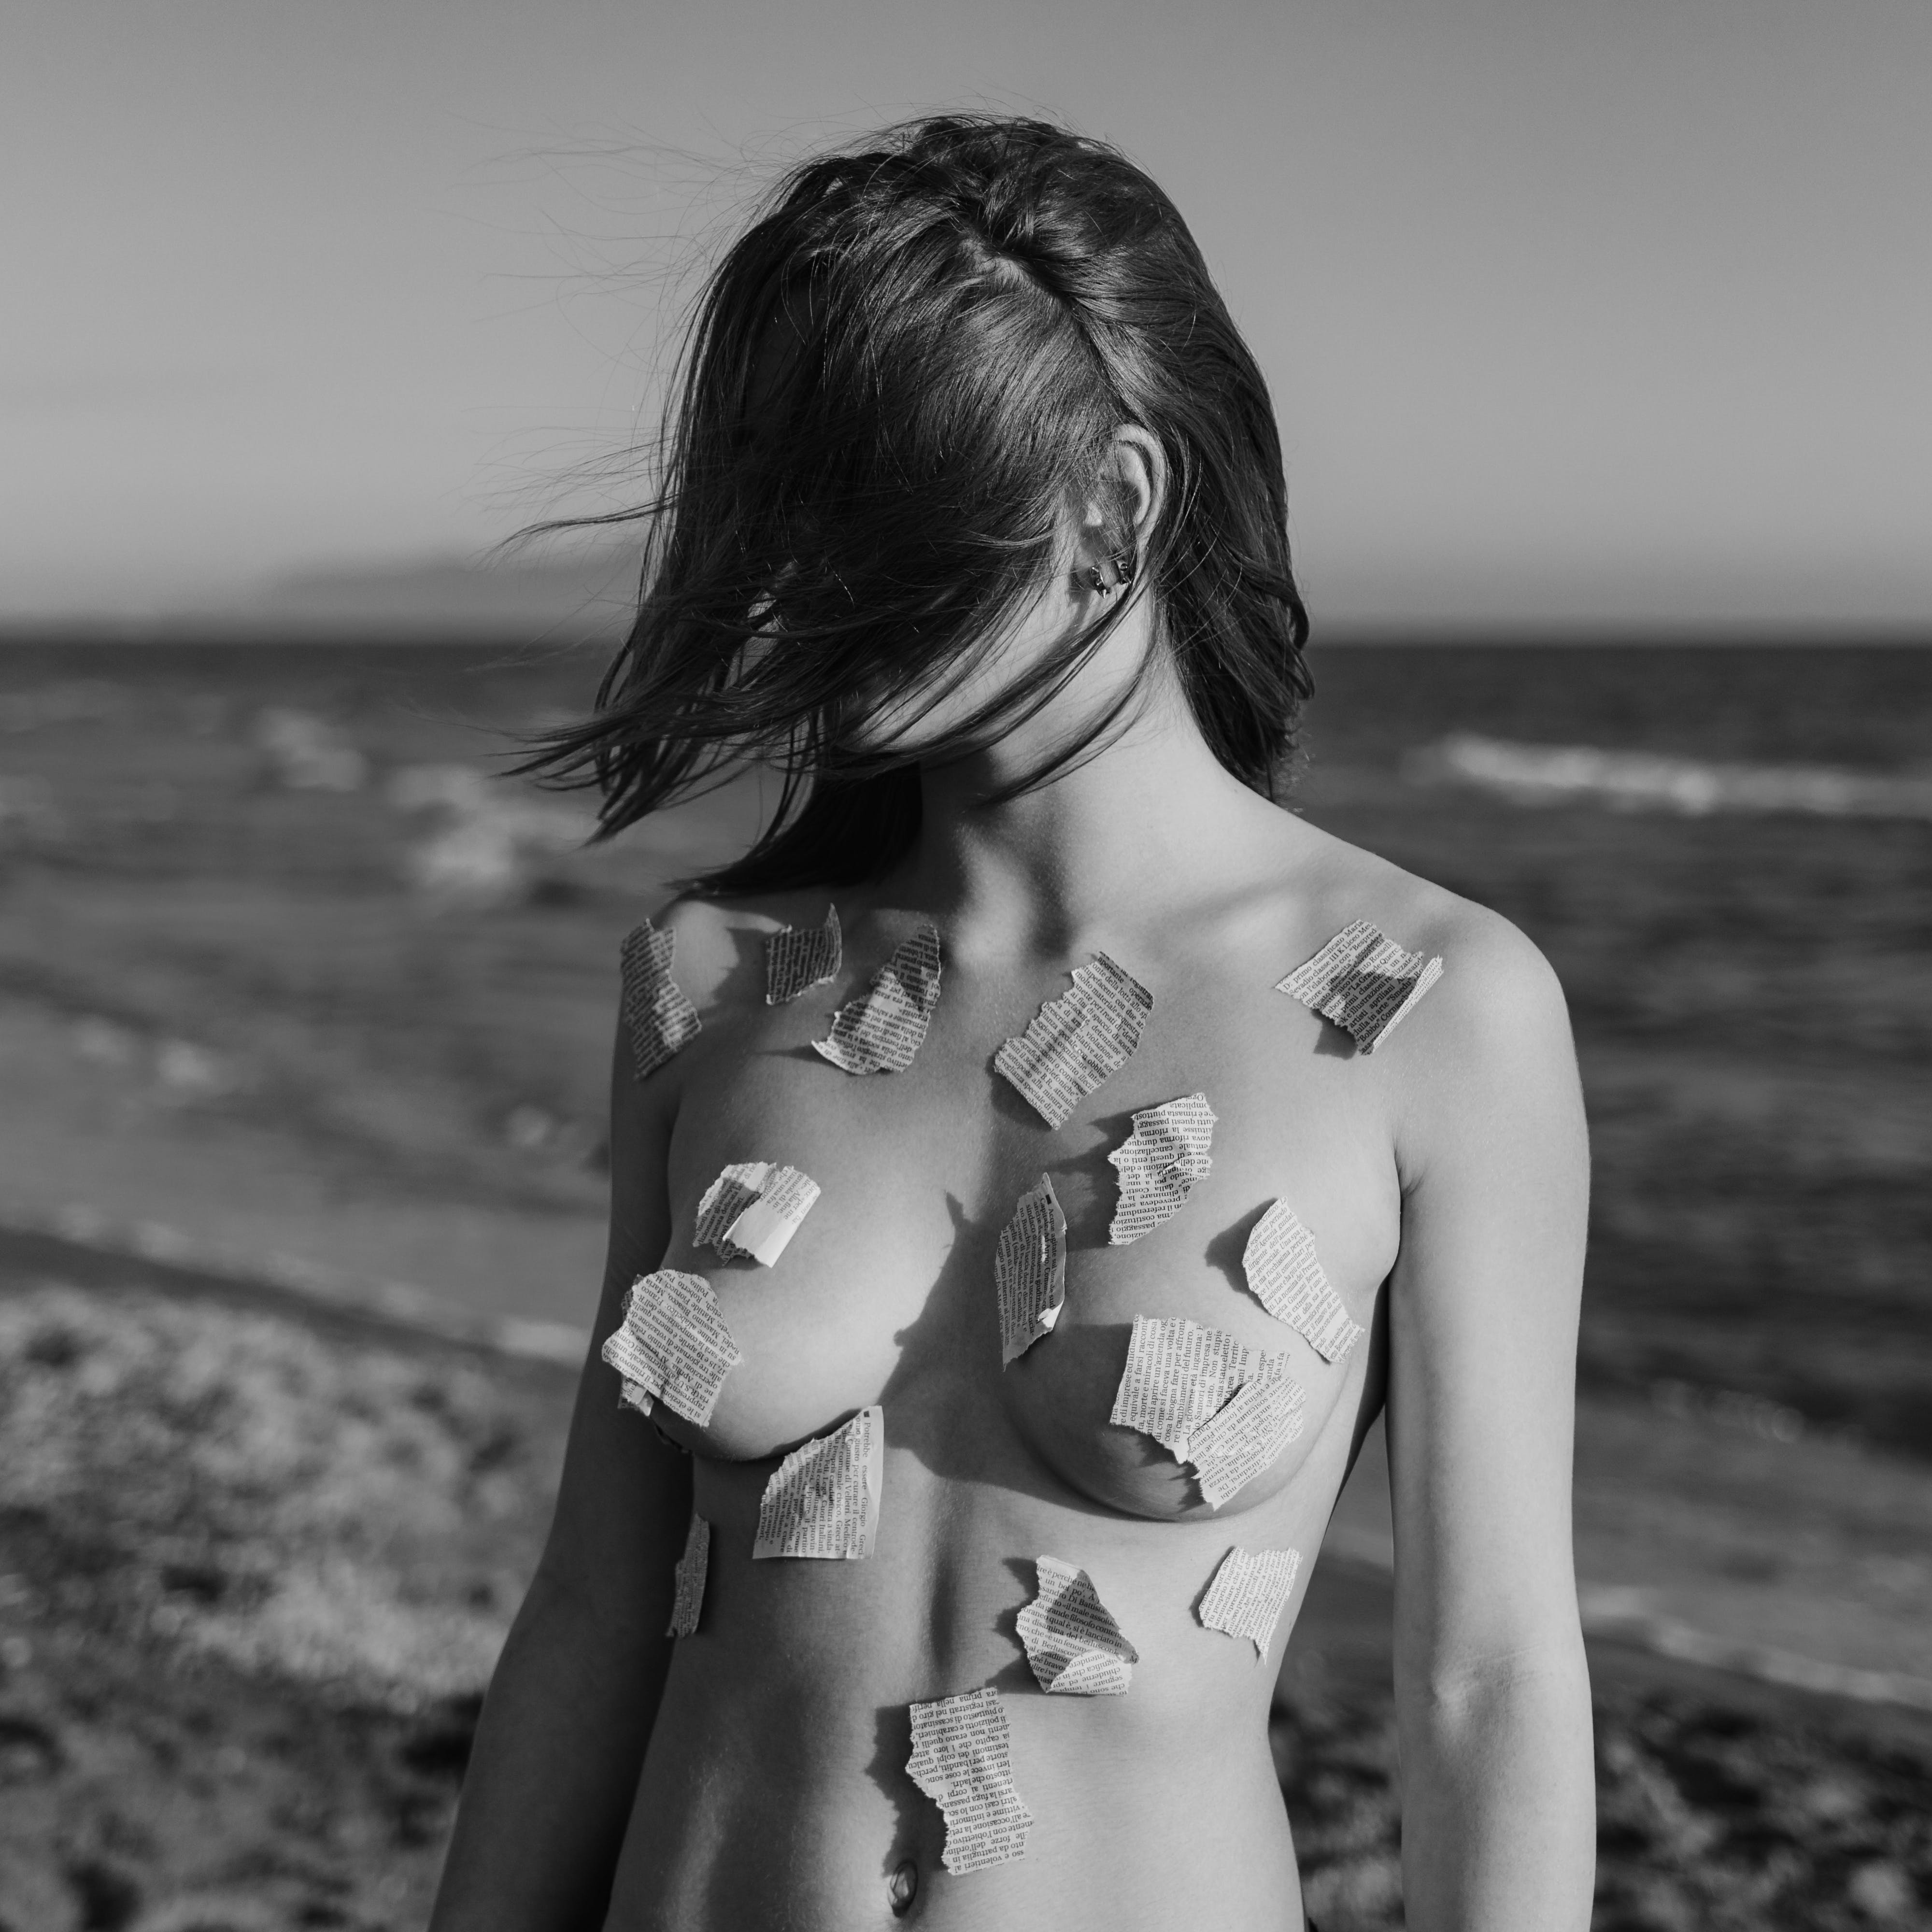 Grayscale Photography Of Topless Woman